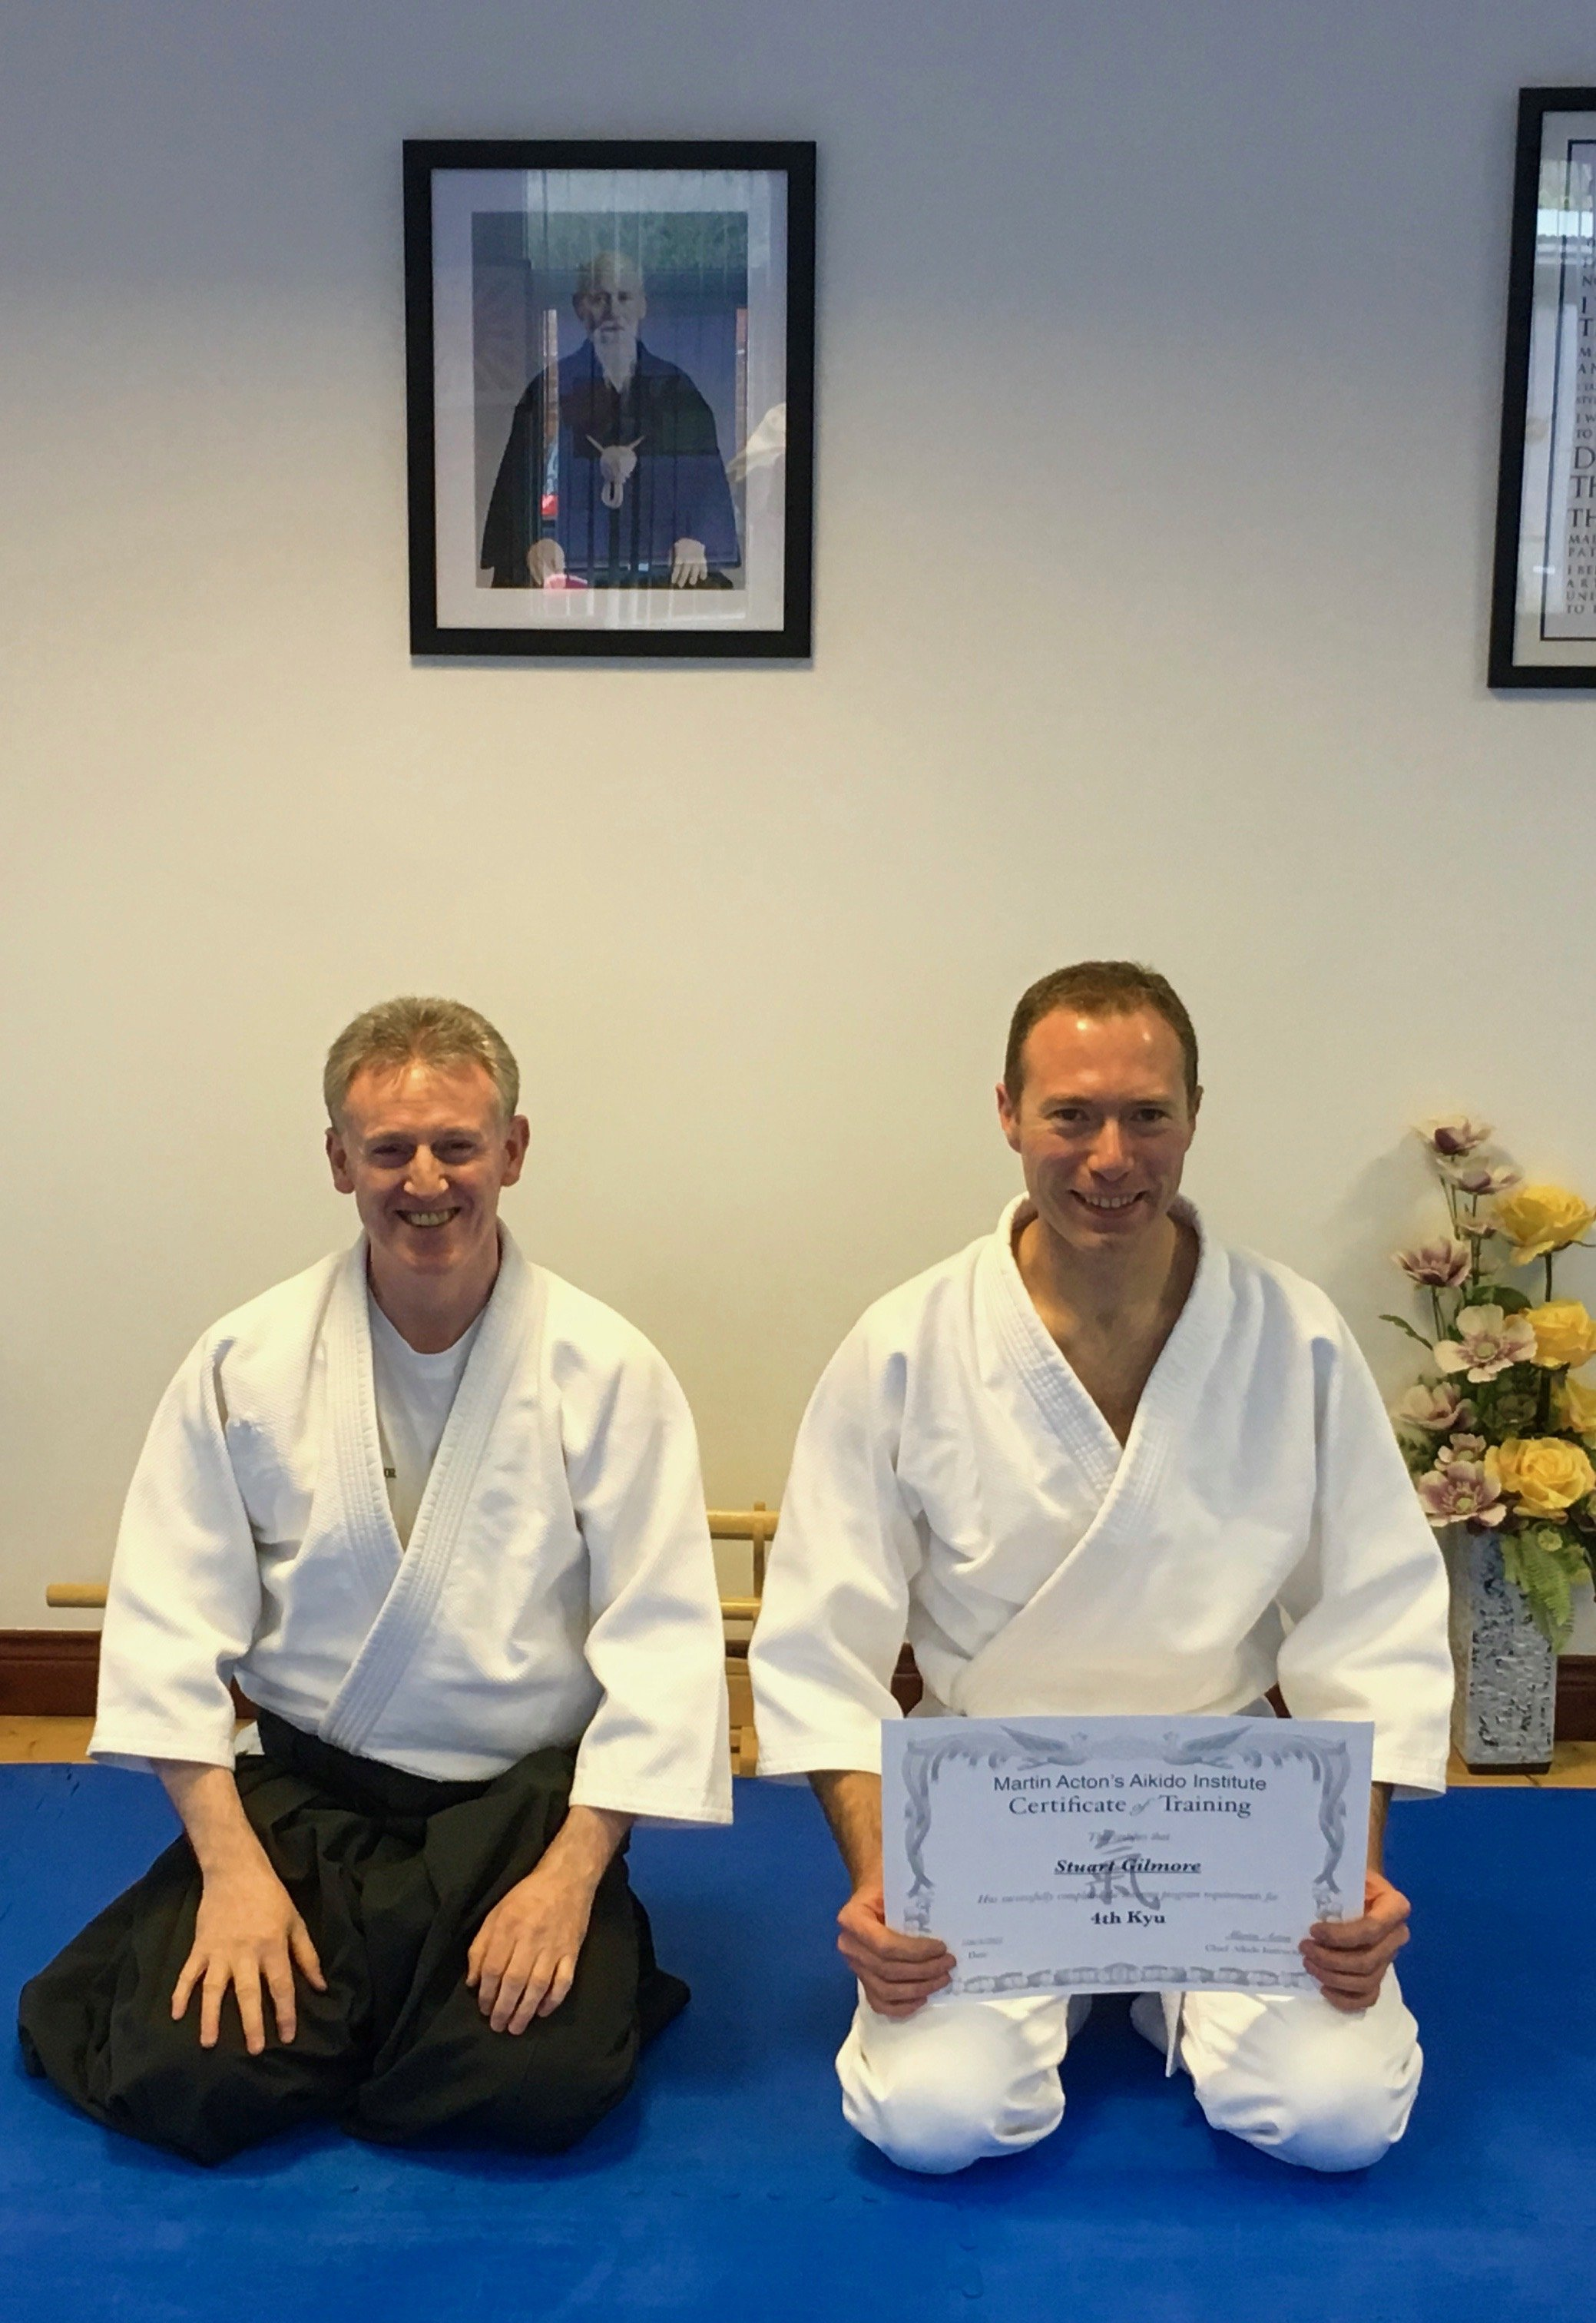 stuart Gilmore receiving his Aikido 4th kyung certification